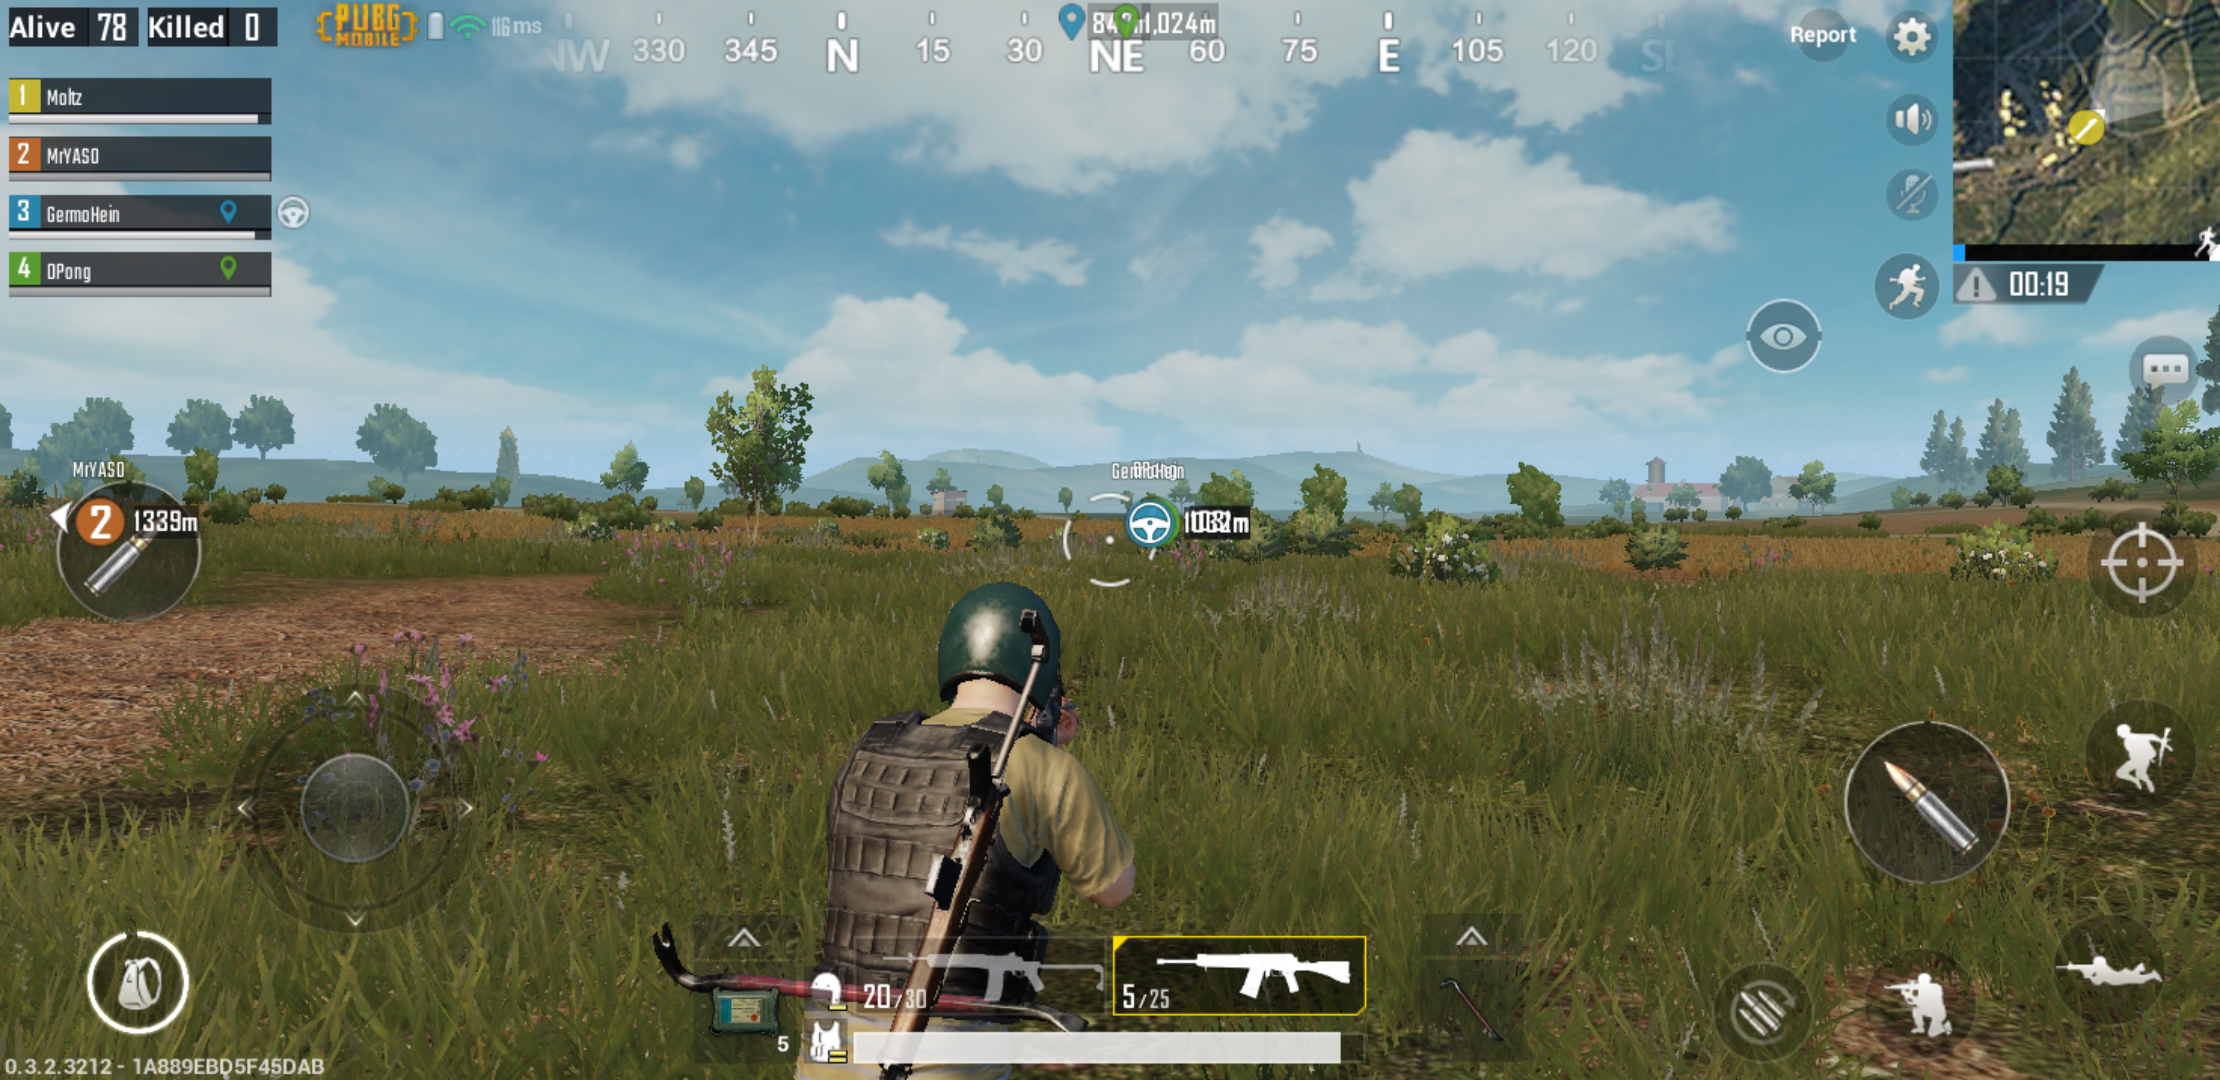 Playing PUBG Mobile with a keyboard and mouse might not be 'cheating